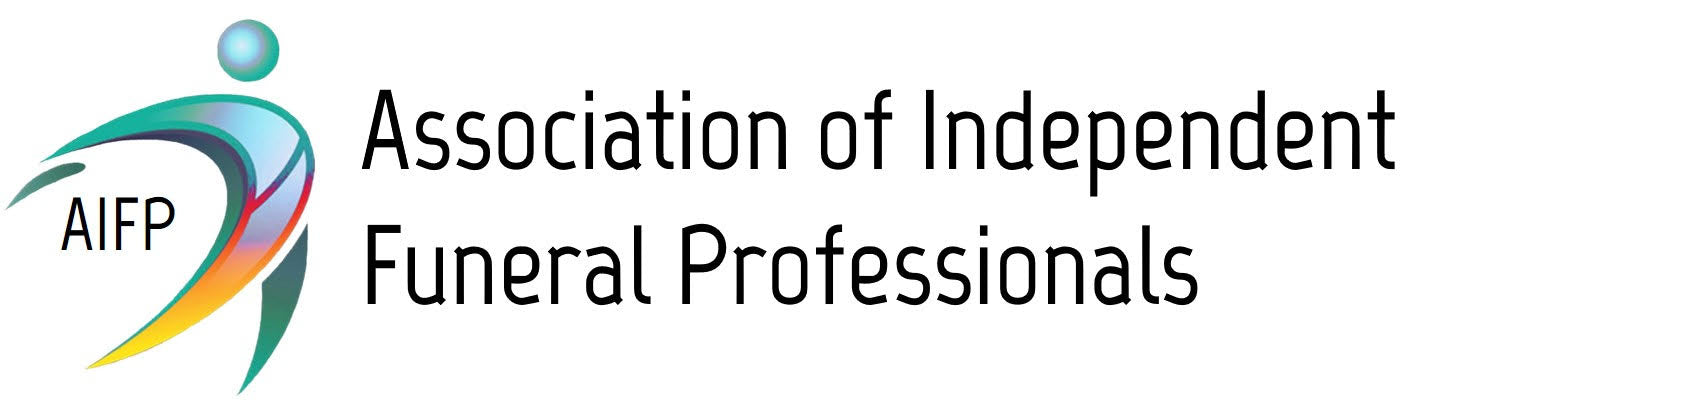 association of independent funeral professionals